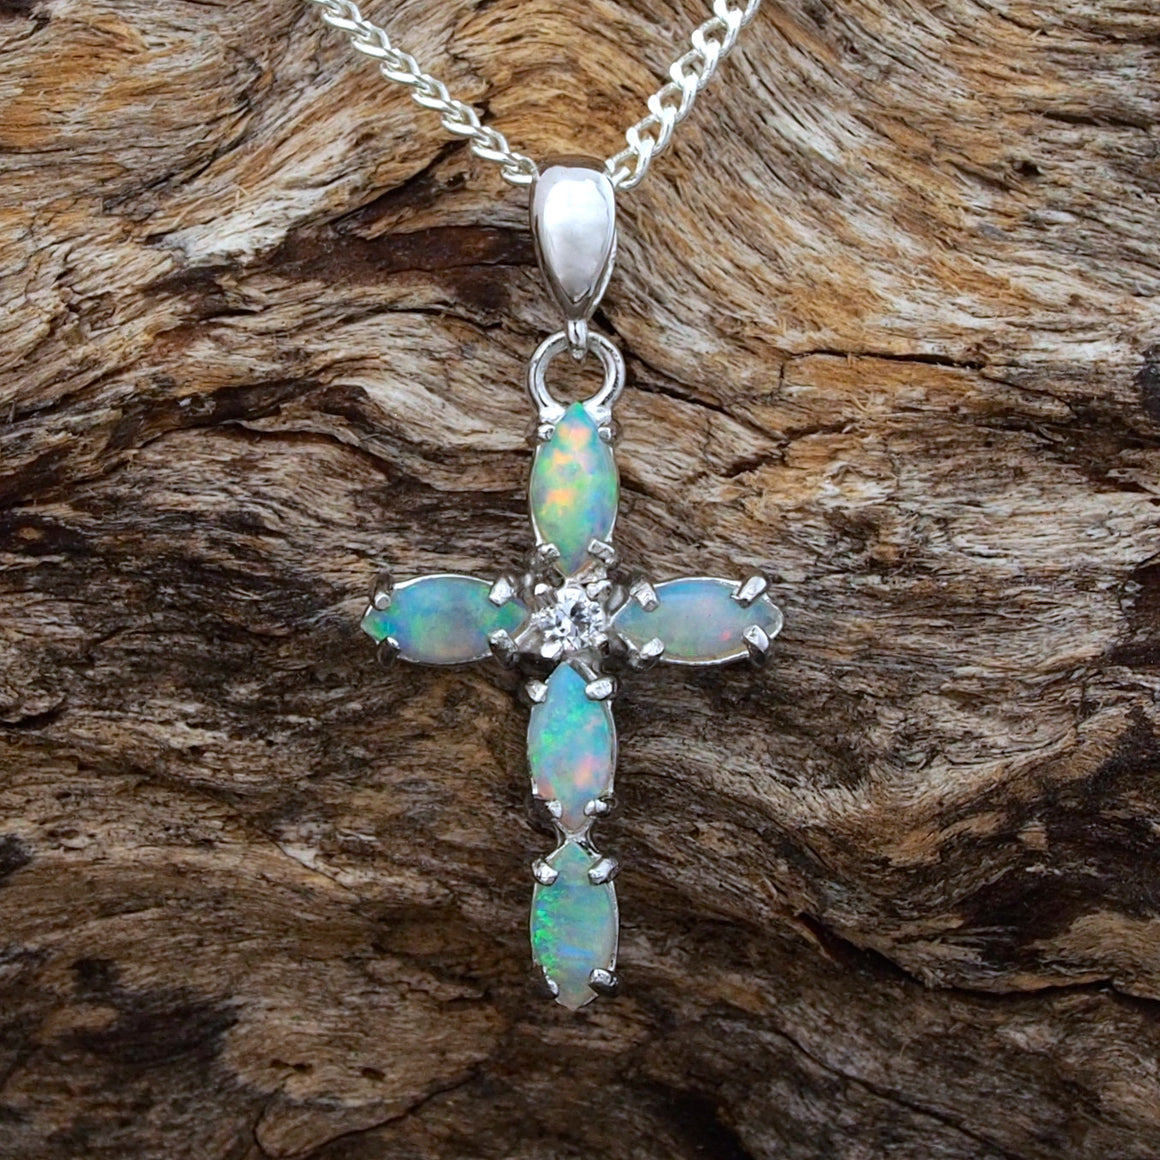 Opal cross necklace pendant claw set with five crystal opals and a cubic zirconia.